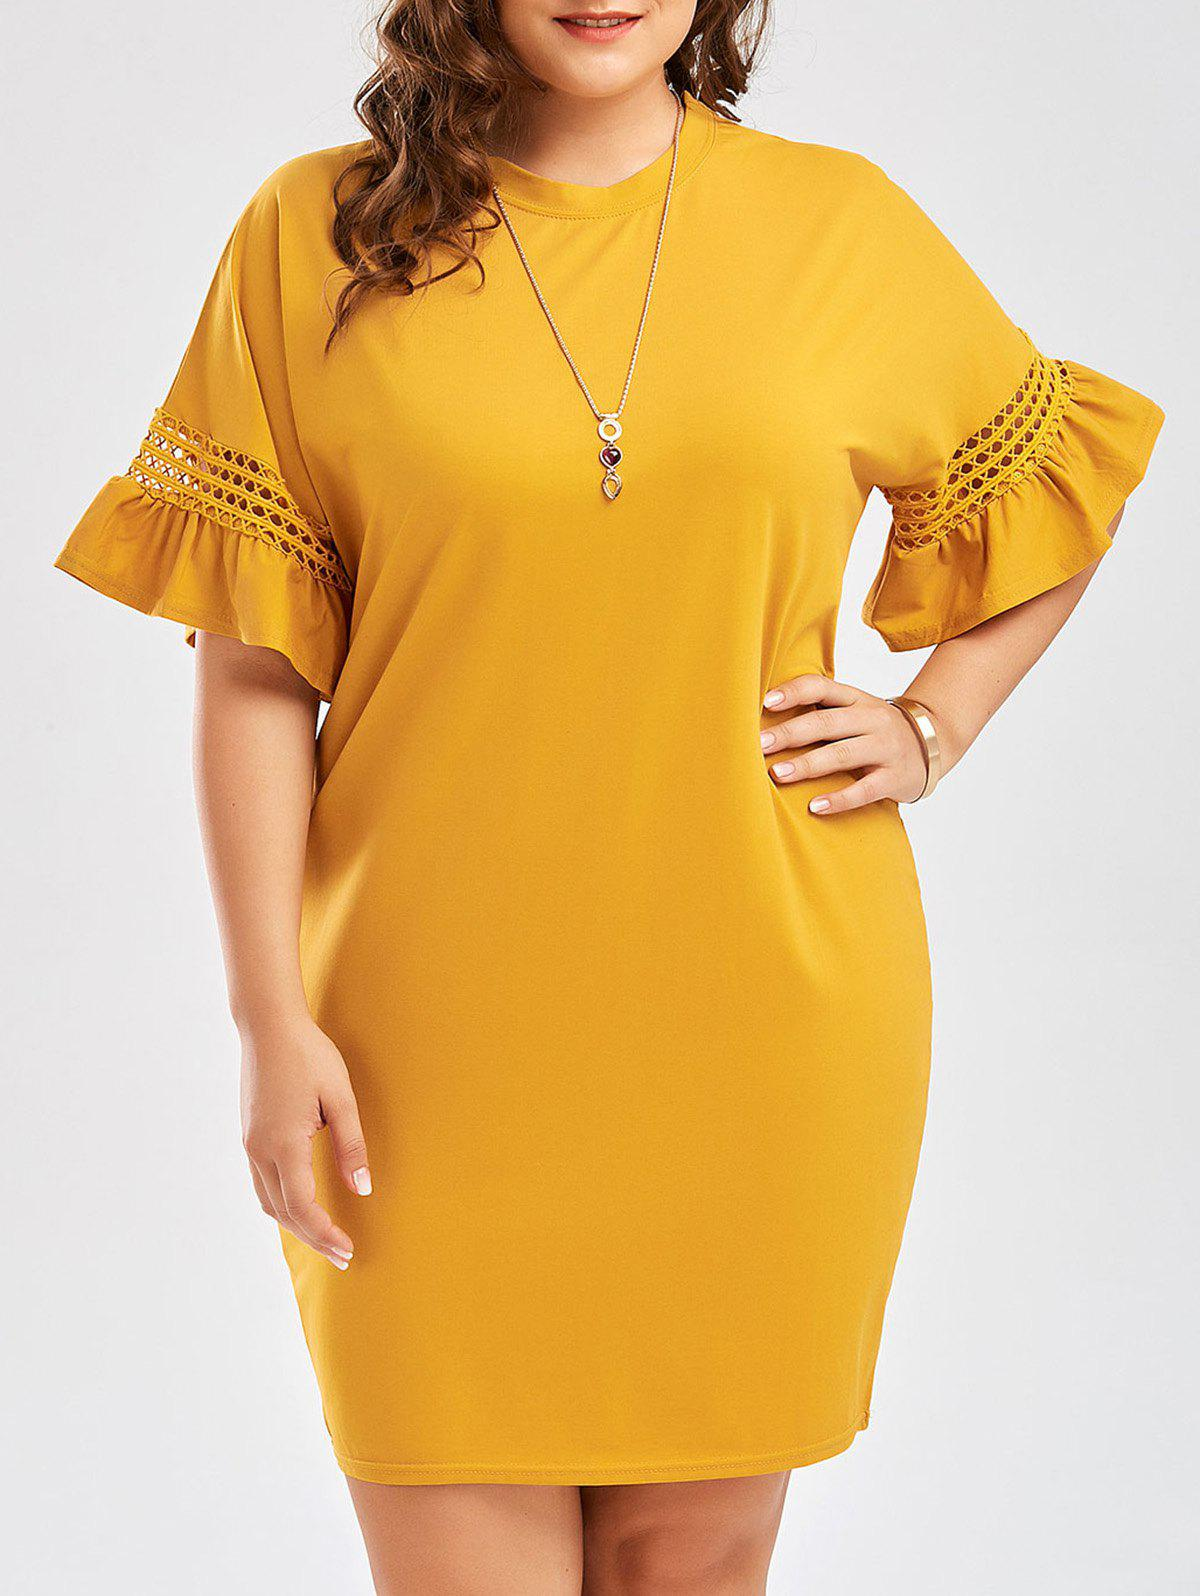 Plus Size Cutout Flare Sleeve  Cocoon Tee DressWOMEN<br><br>Size: 2XL; Color: GINGER; Style: Casual; Material: Cotton Blend,Polyester; Silhouette: Sheath; Dresses Length: Knee-Length; Neckline: Round Collar; Sleeve Type: Flare Sleeve; Sleeve Length: Half Sleeves; Embellishment: Hollow Out; Pattern Type: Solid Color; With Belt: No; Season: Spring,Summer; Weight: 0.3100kg; Package Contents: 1 x Dress;